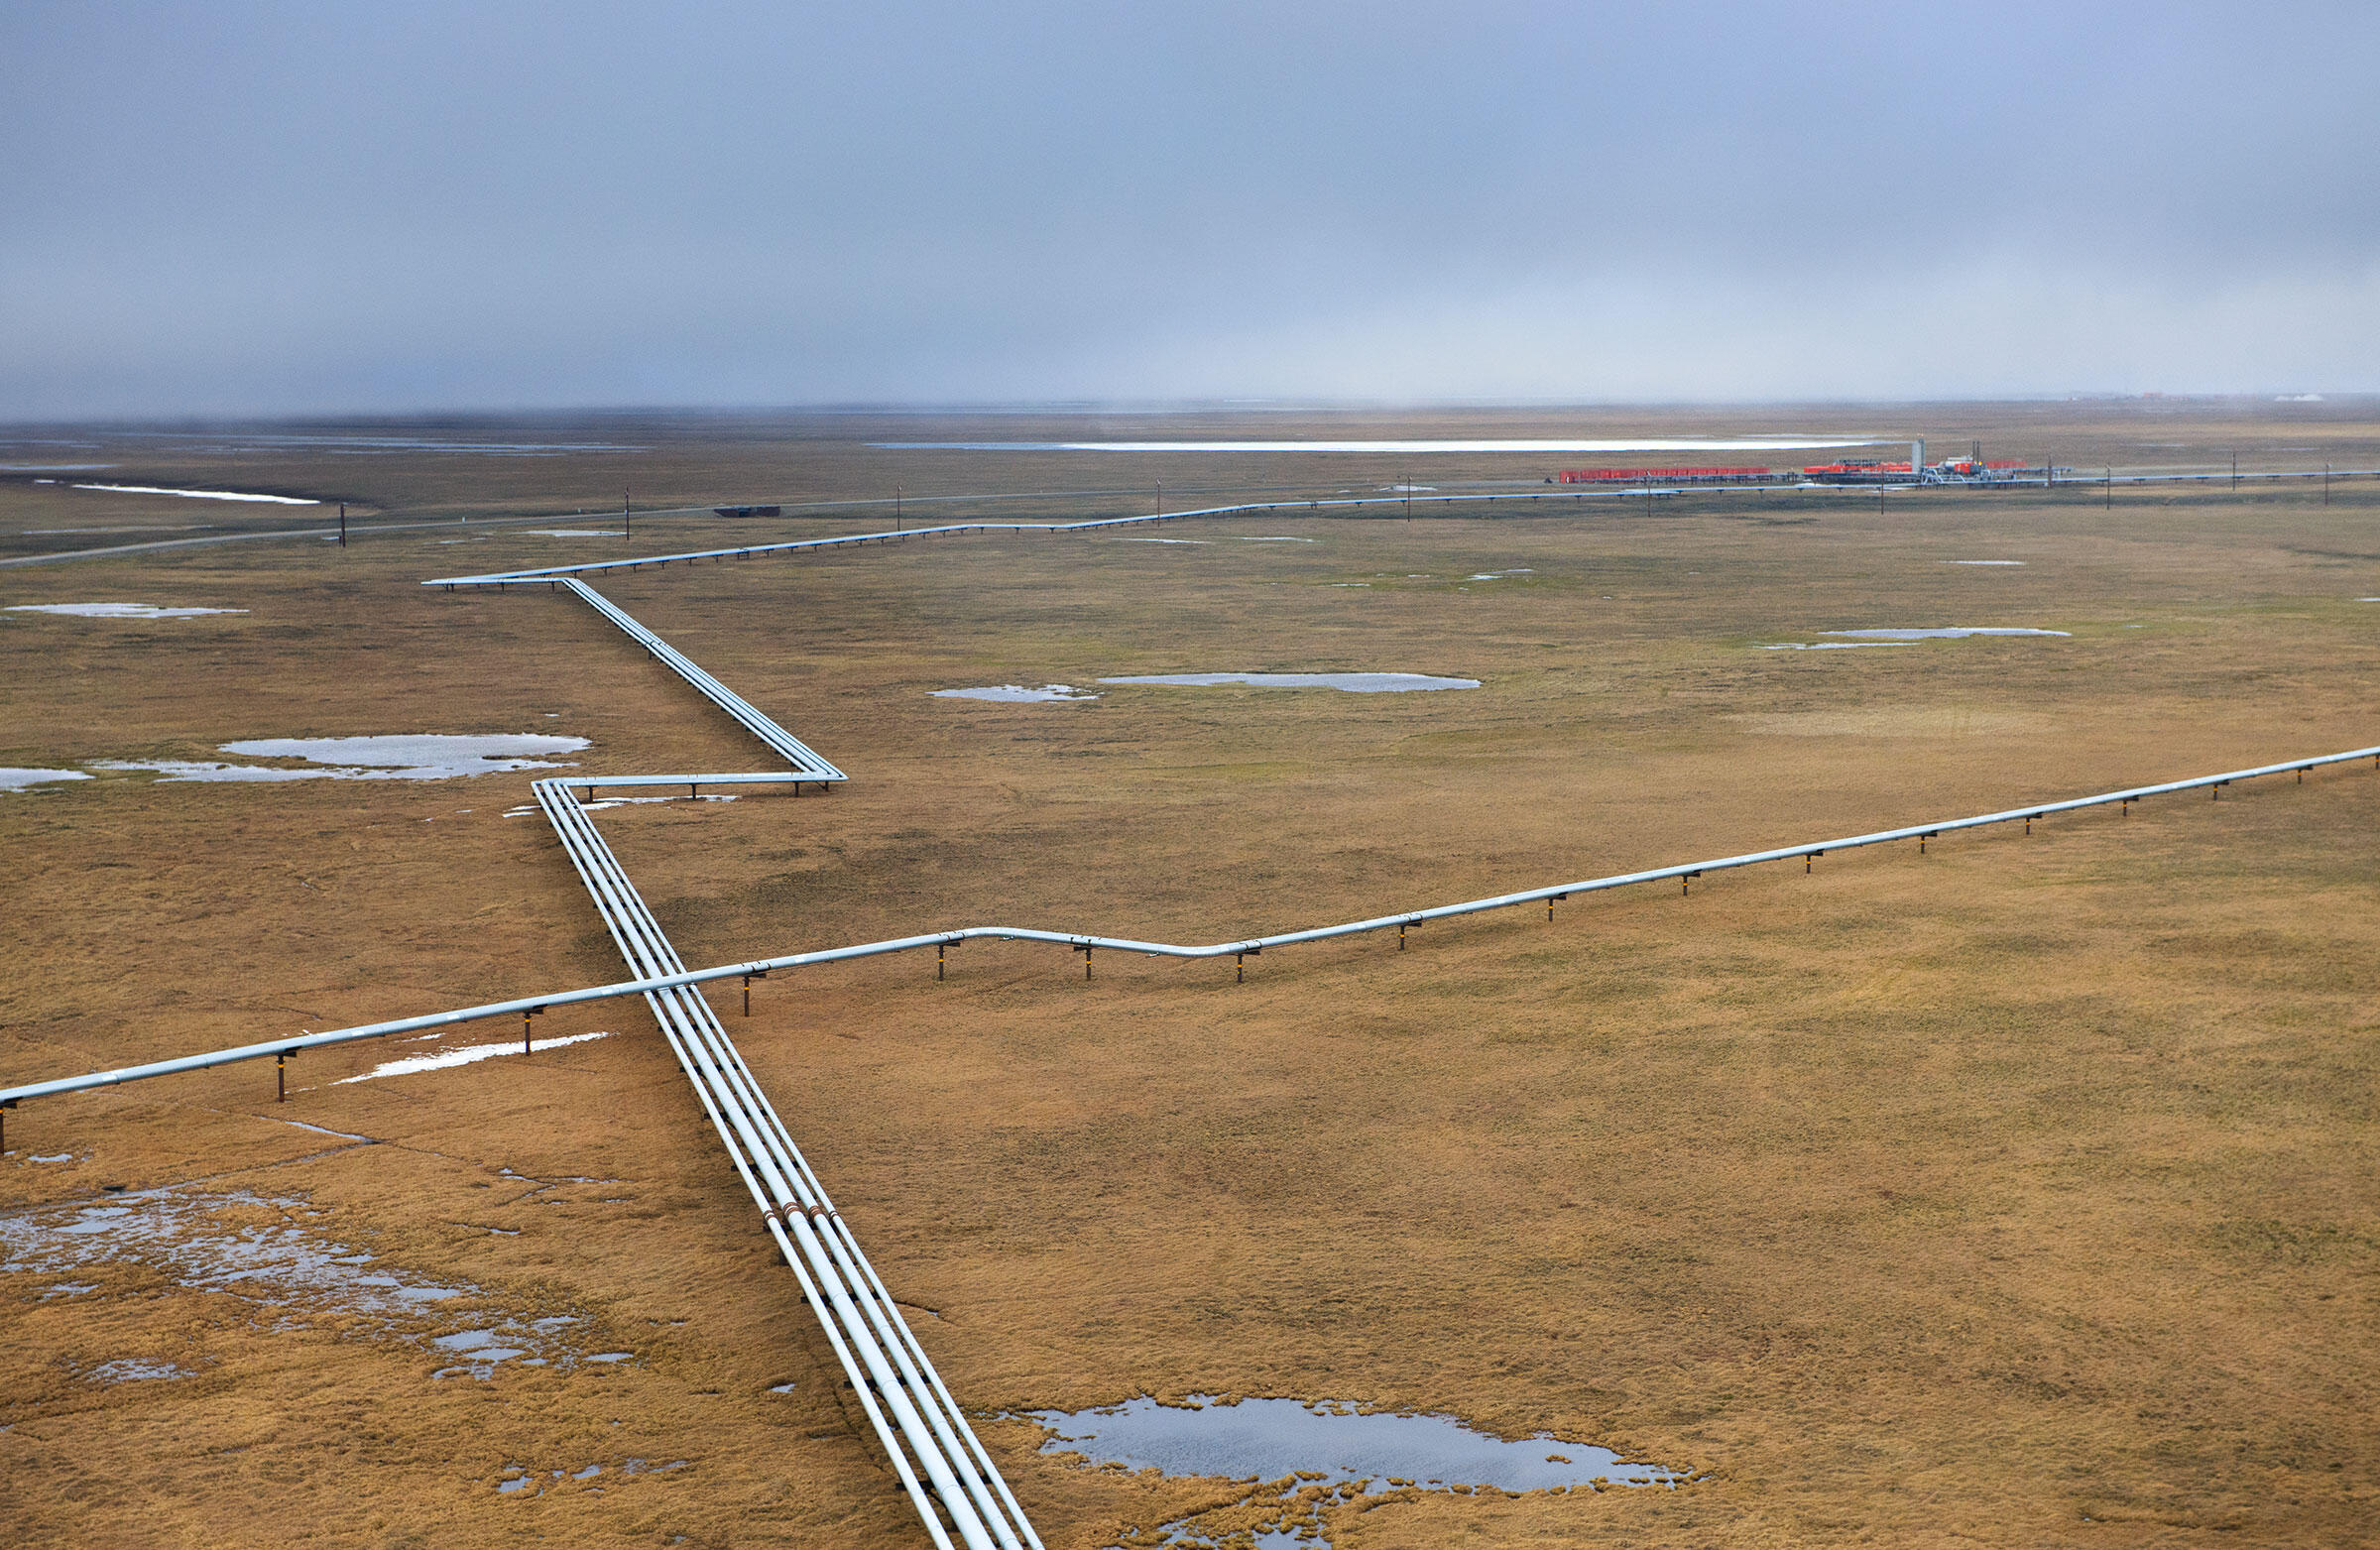 The Prudhoe Bay oilfield, the largest oil field in North America, reaches over 100 miles between its western edge and the Arctic Refuge. A large network of roads and pipelines crisscrosses the coastal tundra. Florian Schulz